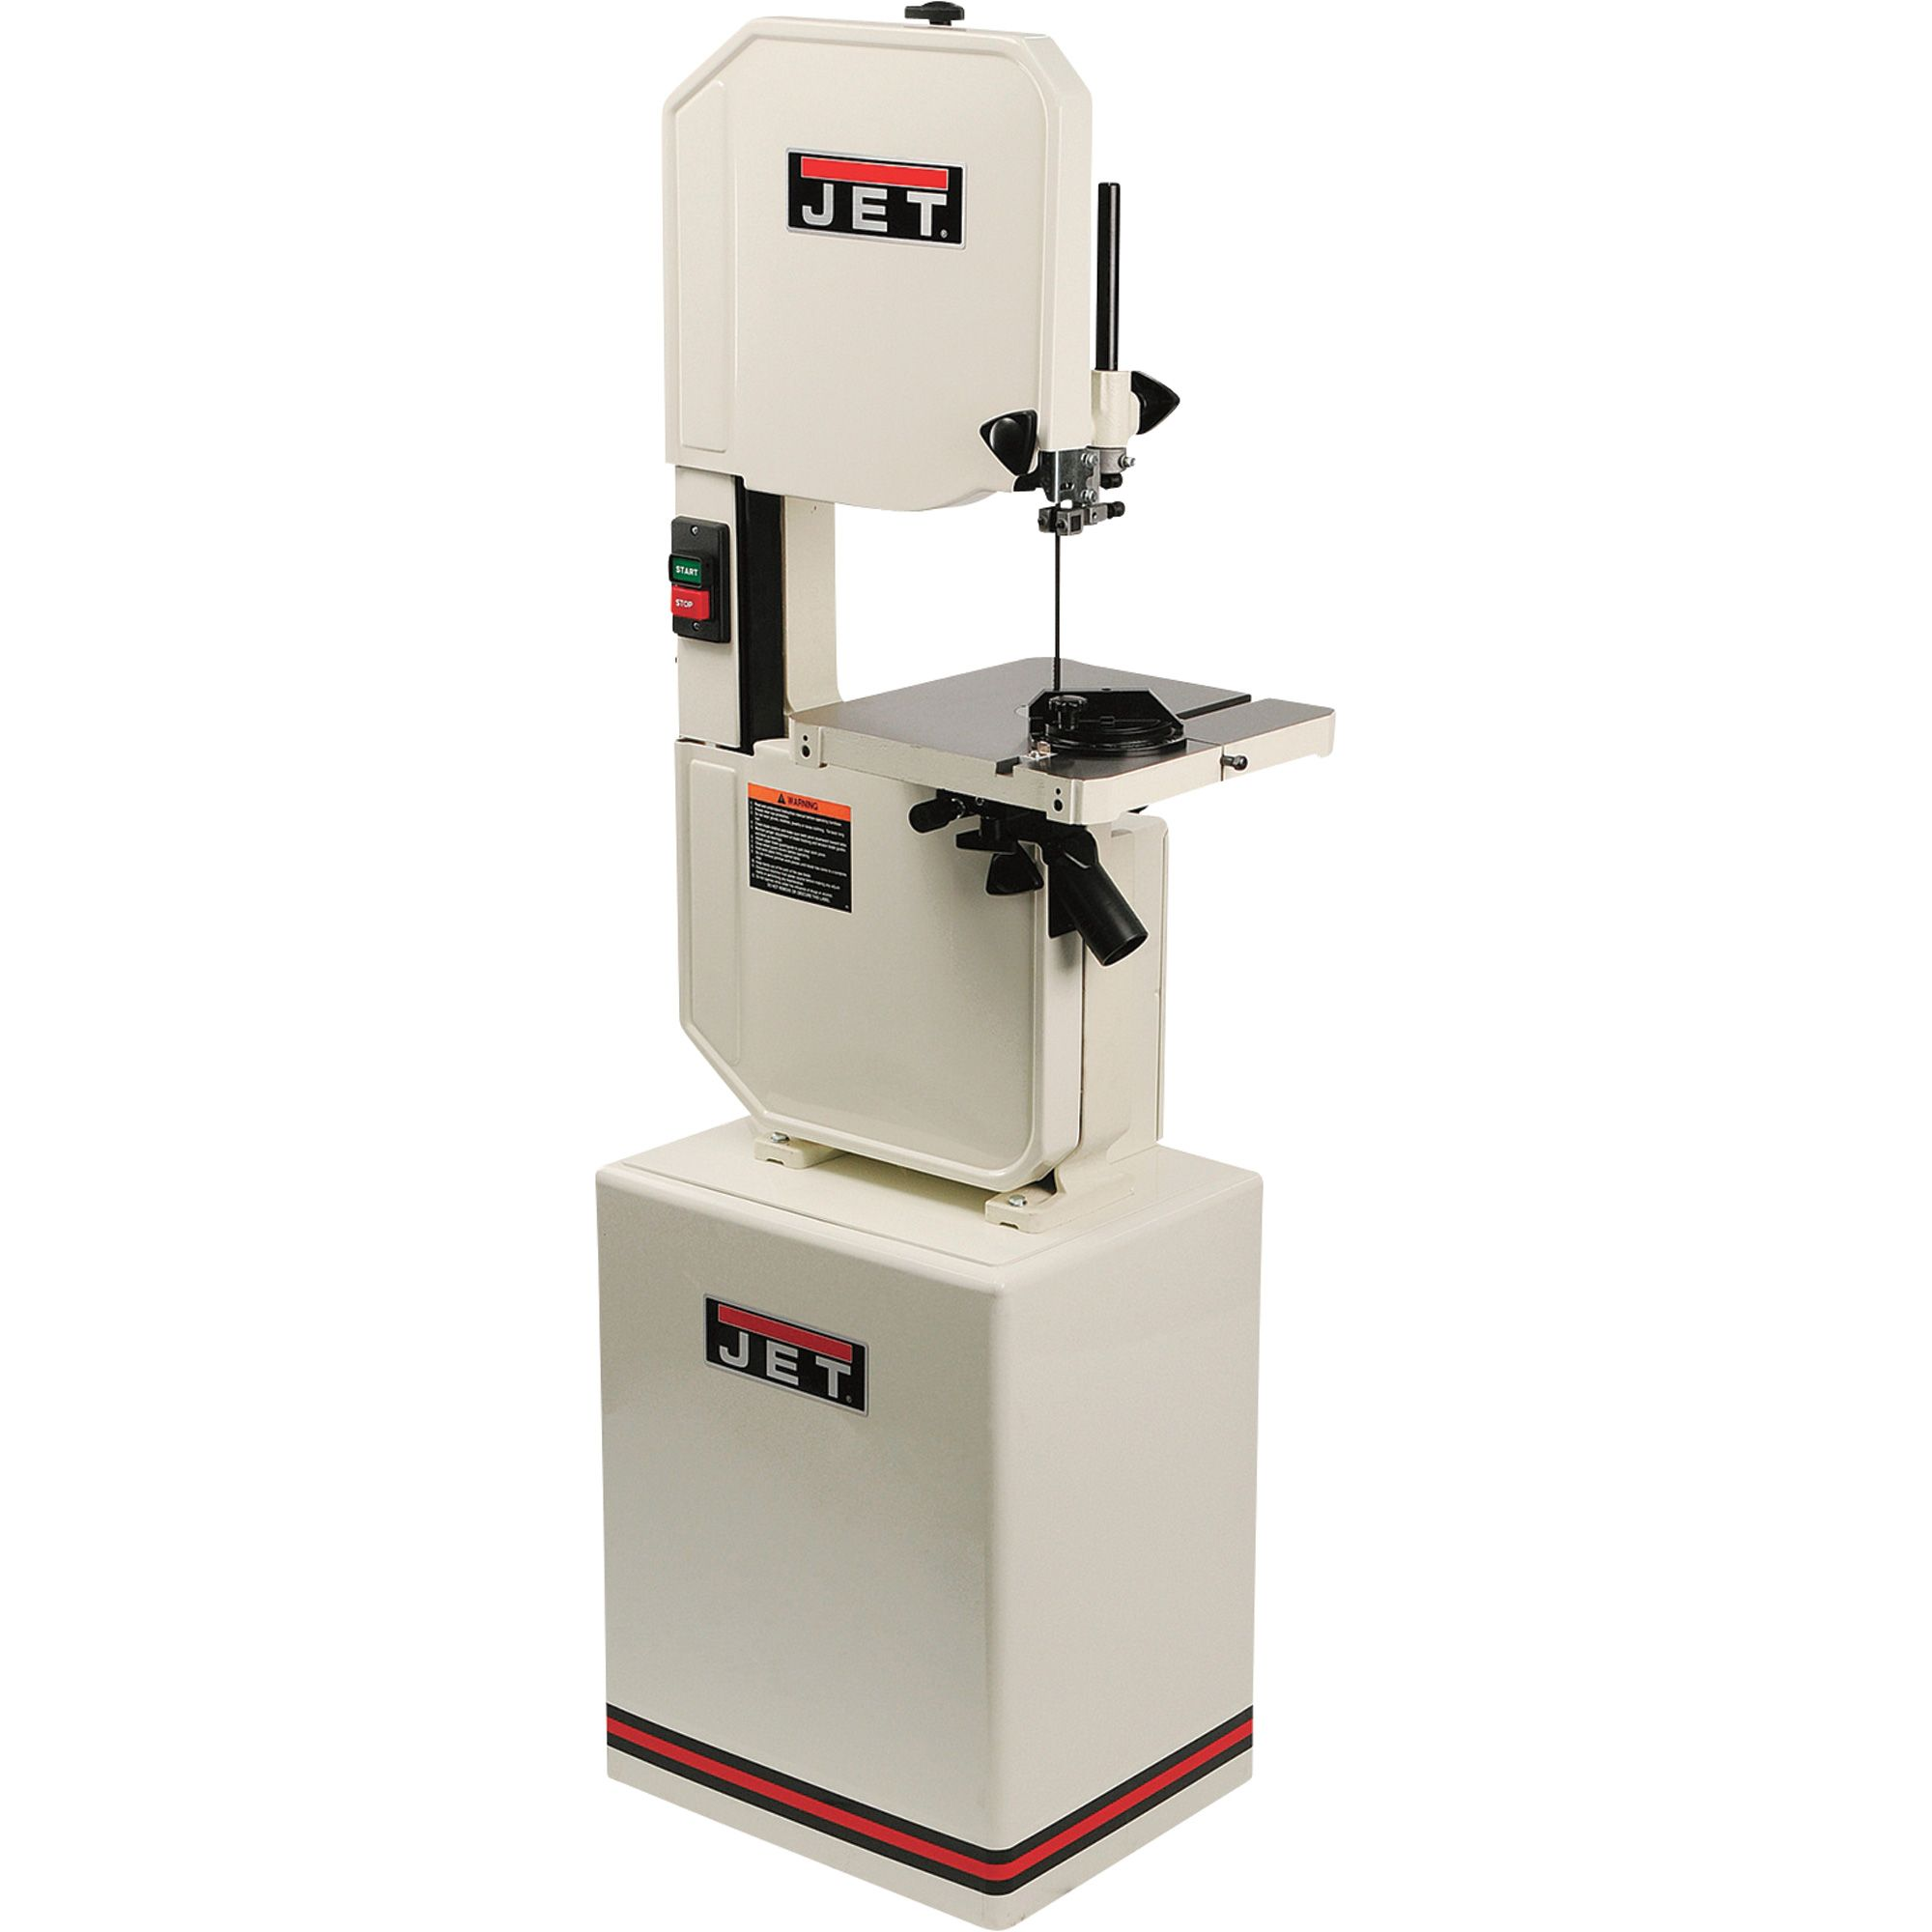 band plant dekarz bandsaw bench xrd saw plete decosmo inc inspiration closing of engineering design top awesome tag benchtop best